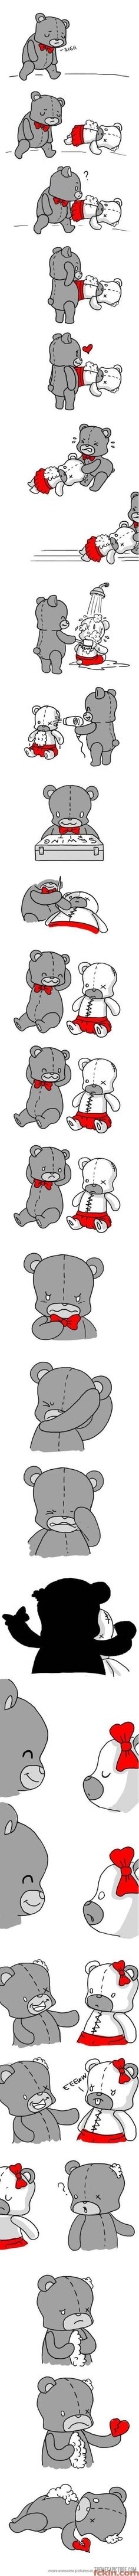 LOL Teddy Bear Love Story. (So Typical)